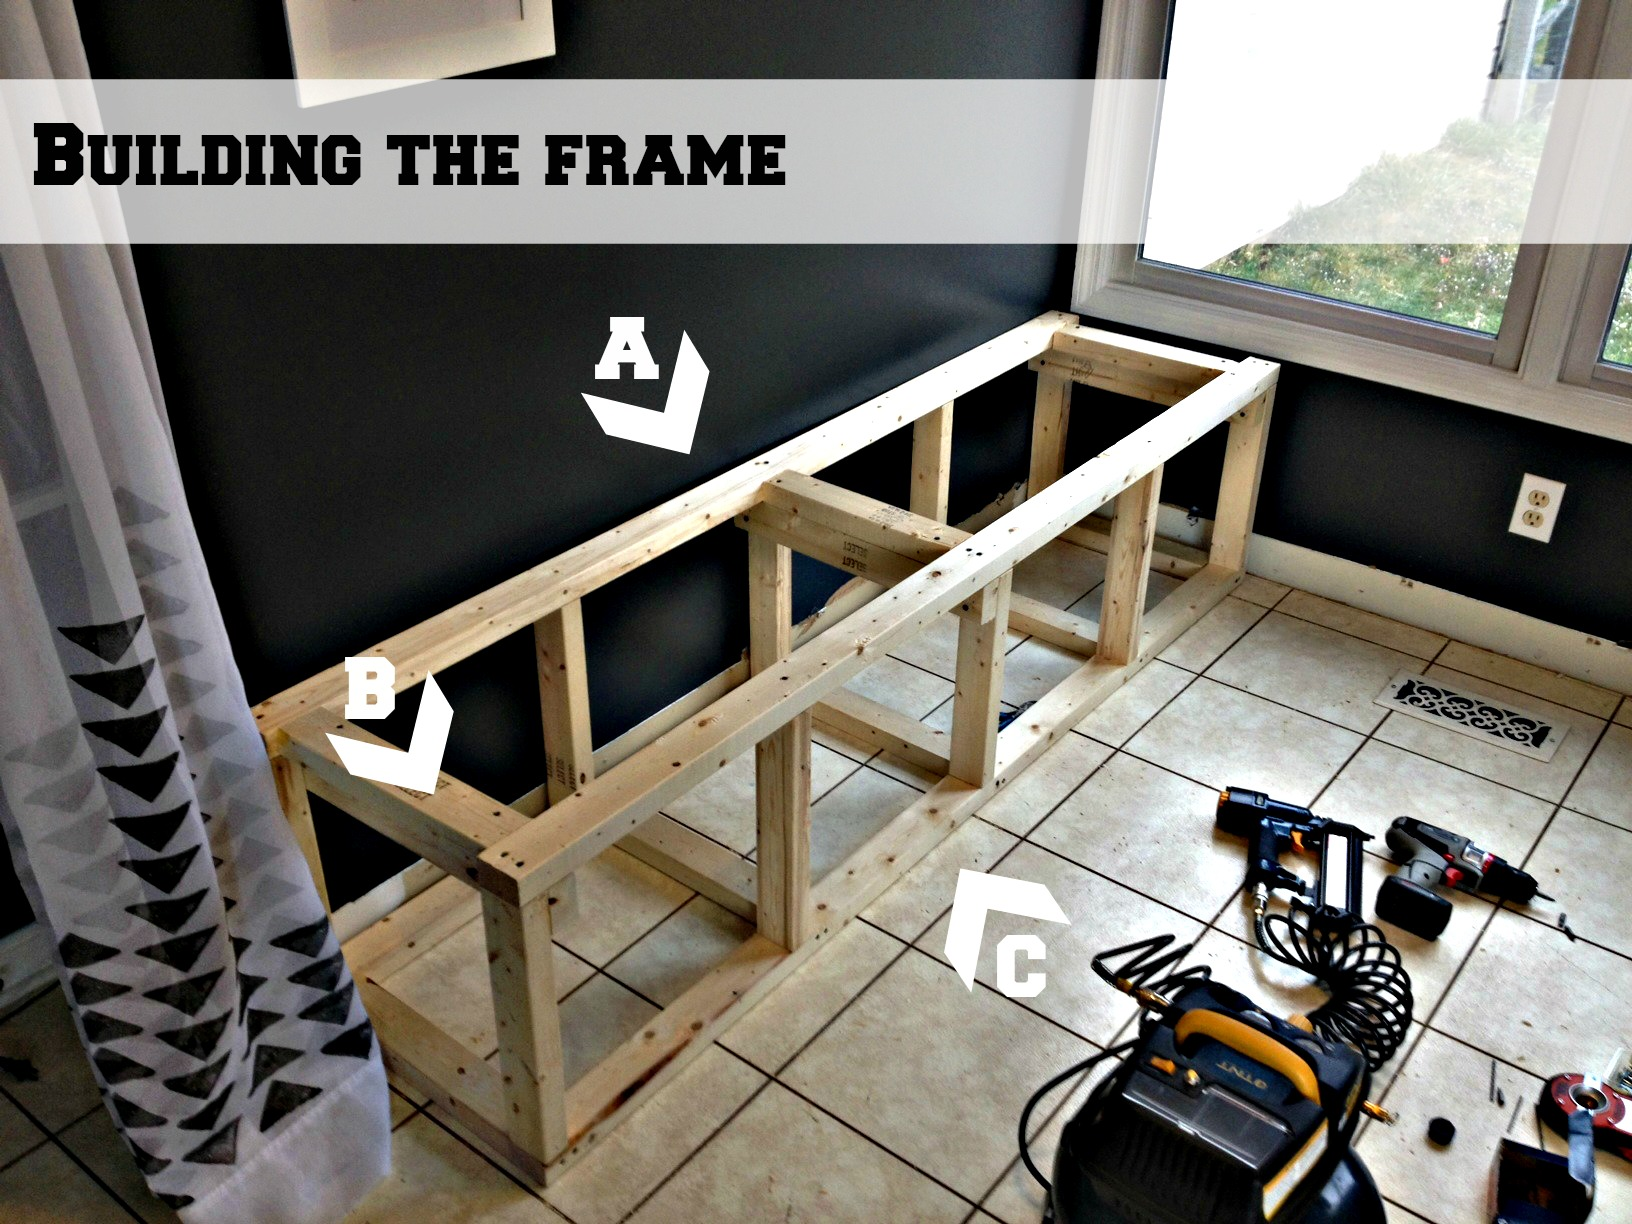 Built In Bench Remodelaholic Build A Custom Corner Banquette Bench